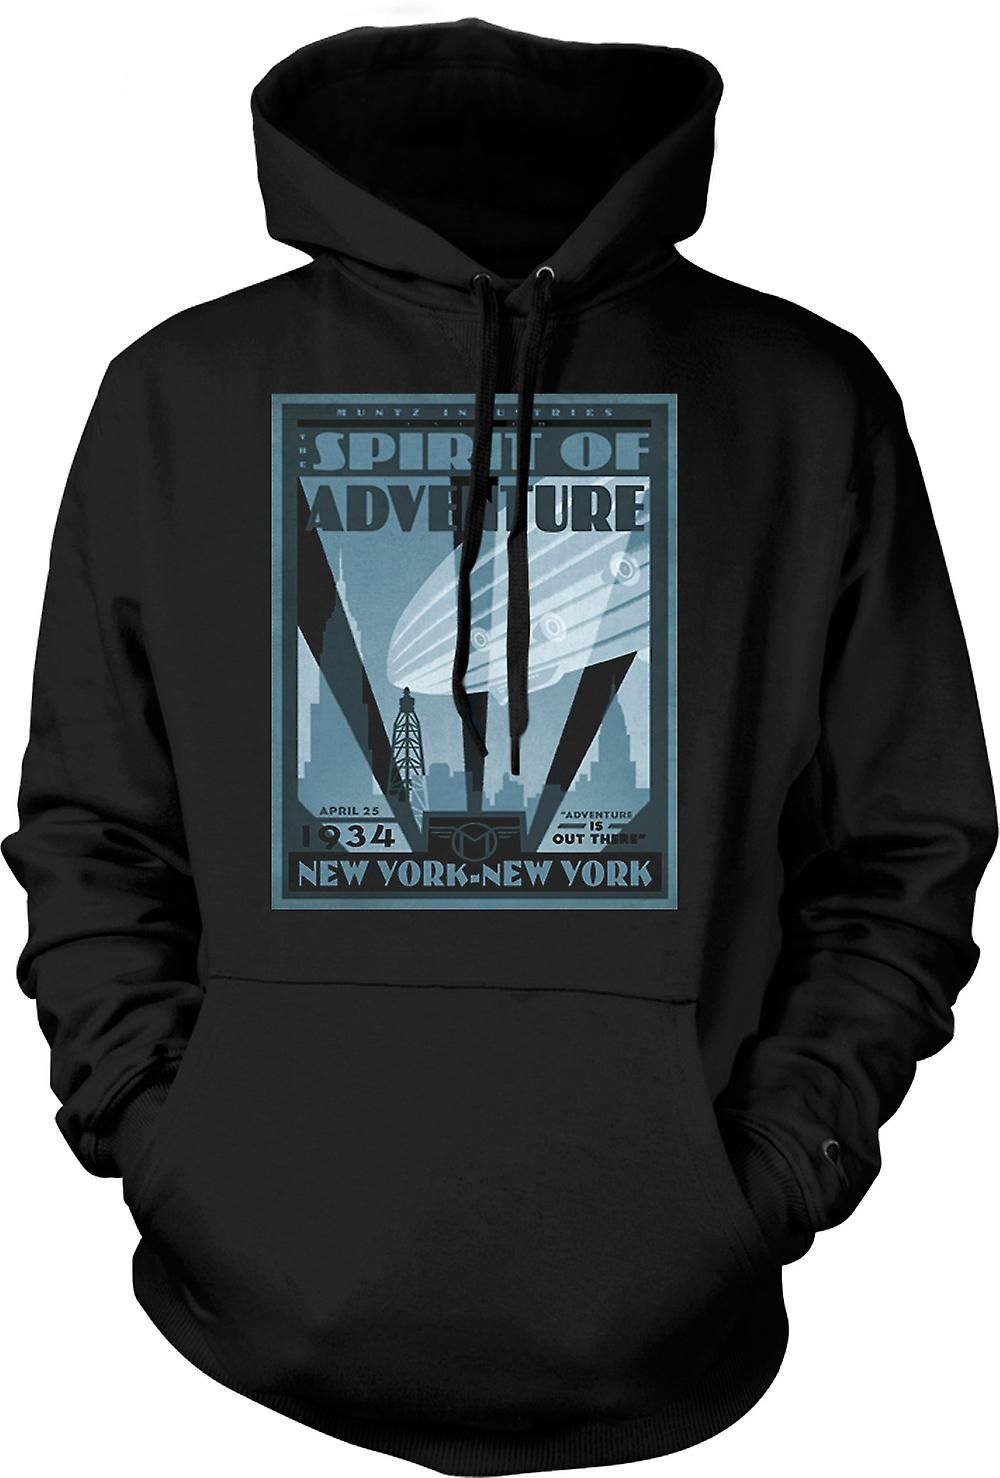 Mens Hoodie - Muntzs Industries de New York - Cool